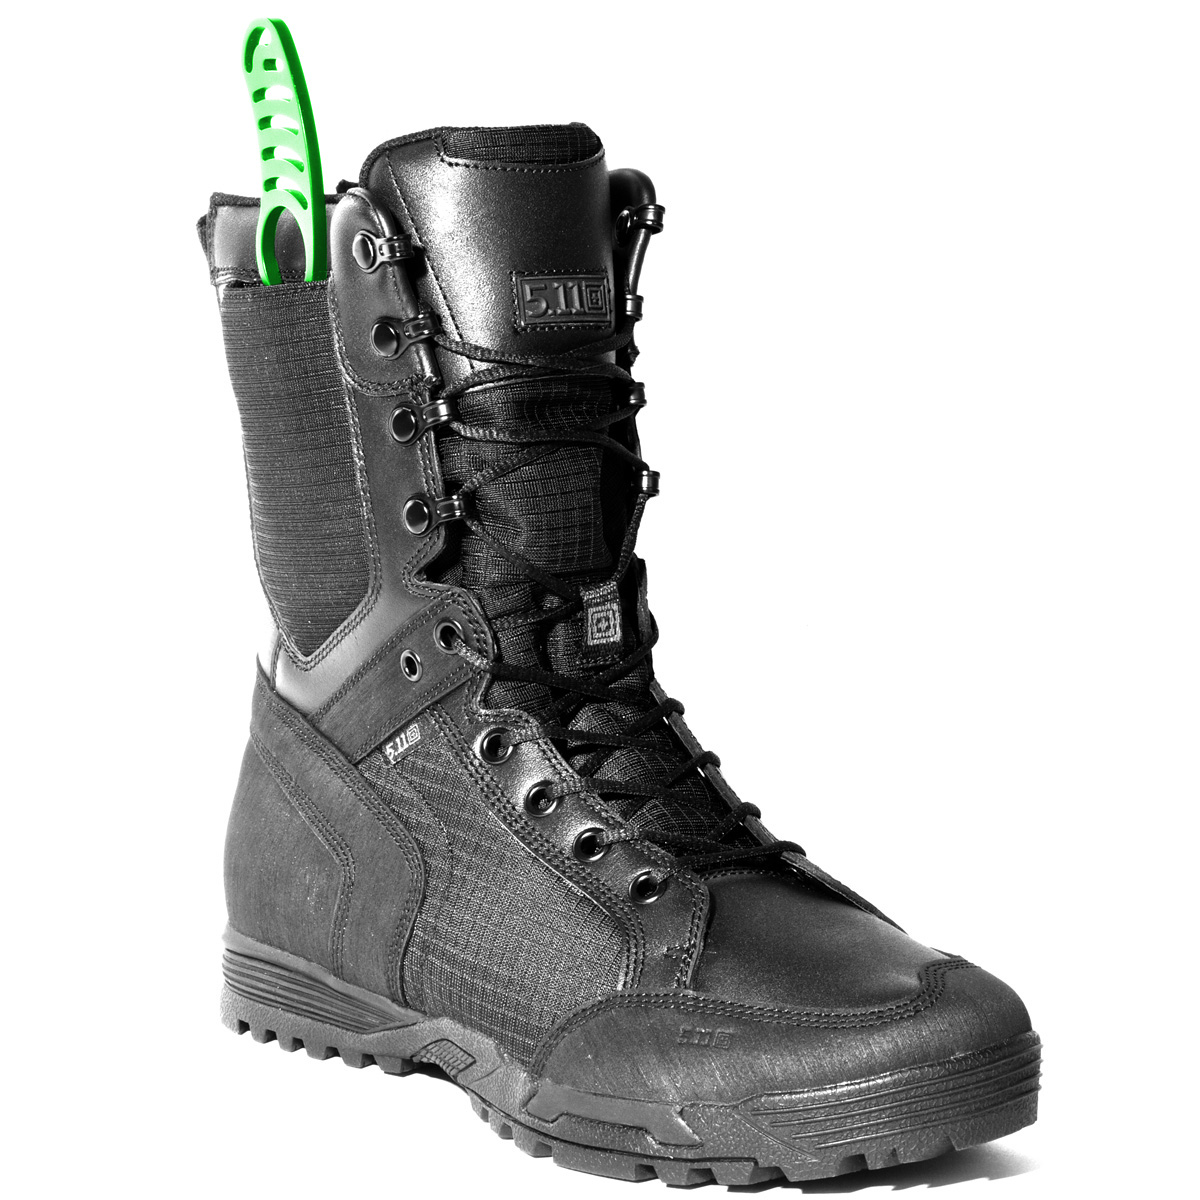 5.11 Recon Urban Tactical Mens Boots Army Patrol Police ...